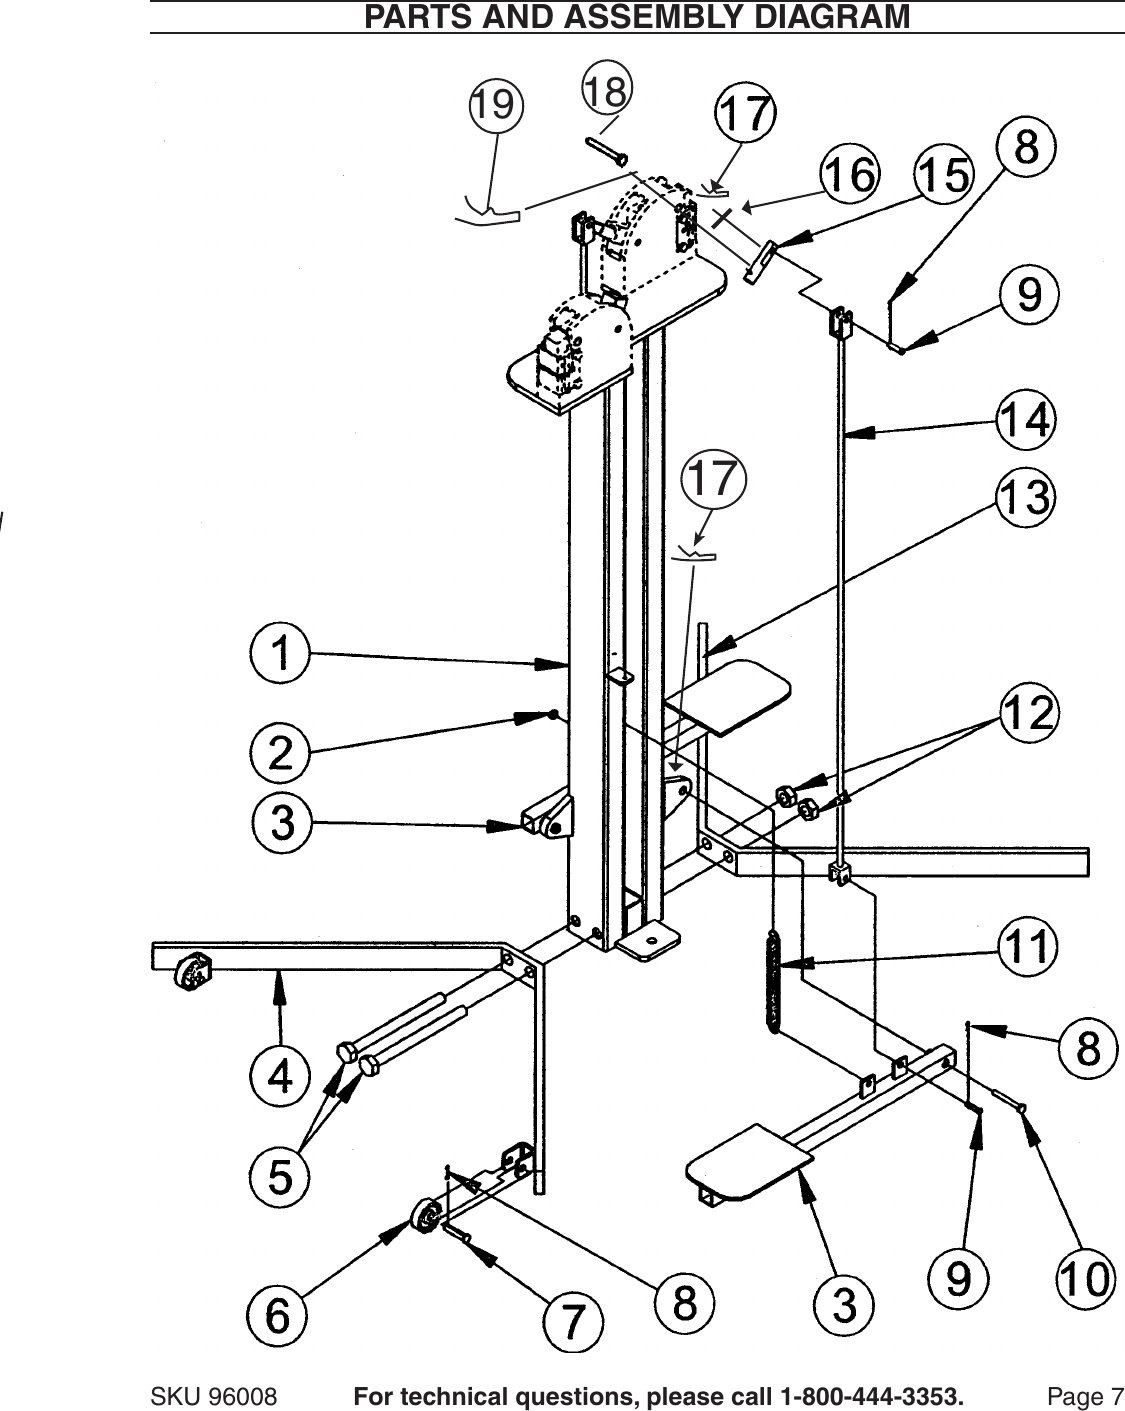 Harbor Freight Stand For Shrinker And Stretcher Machines